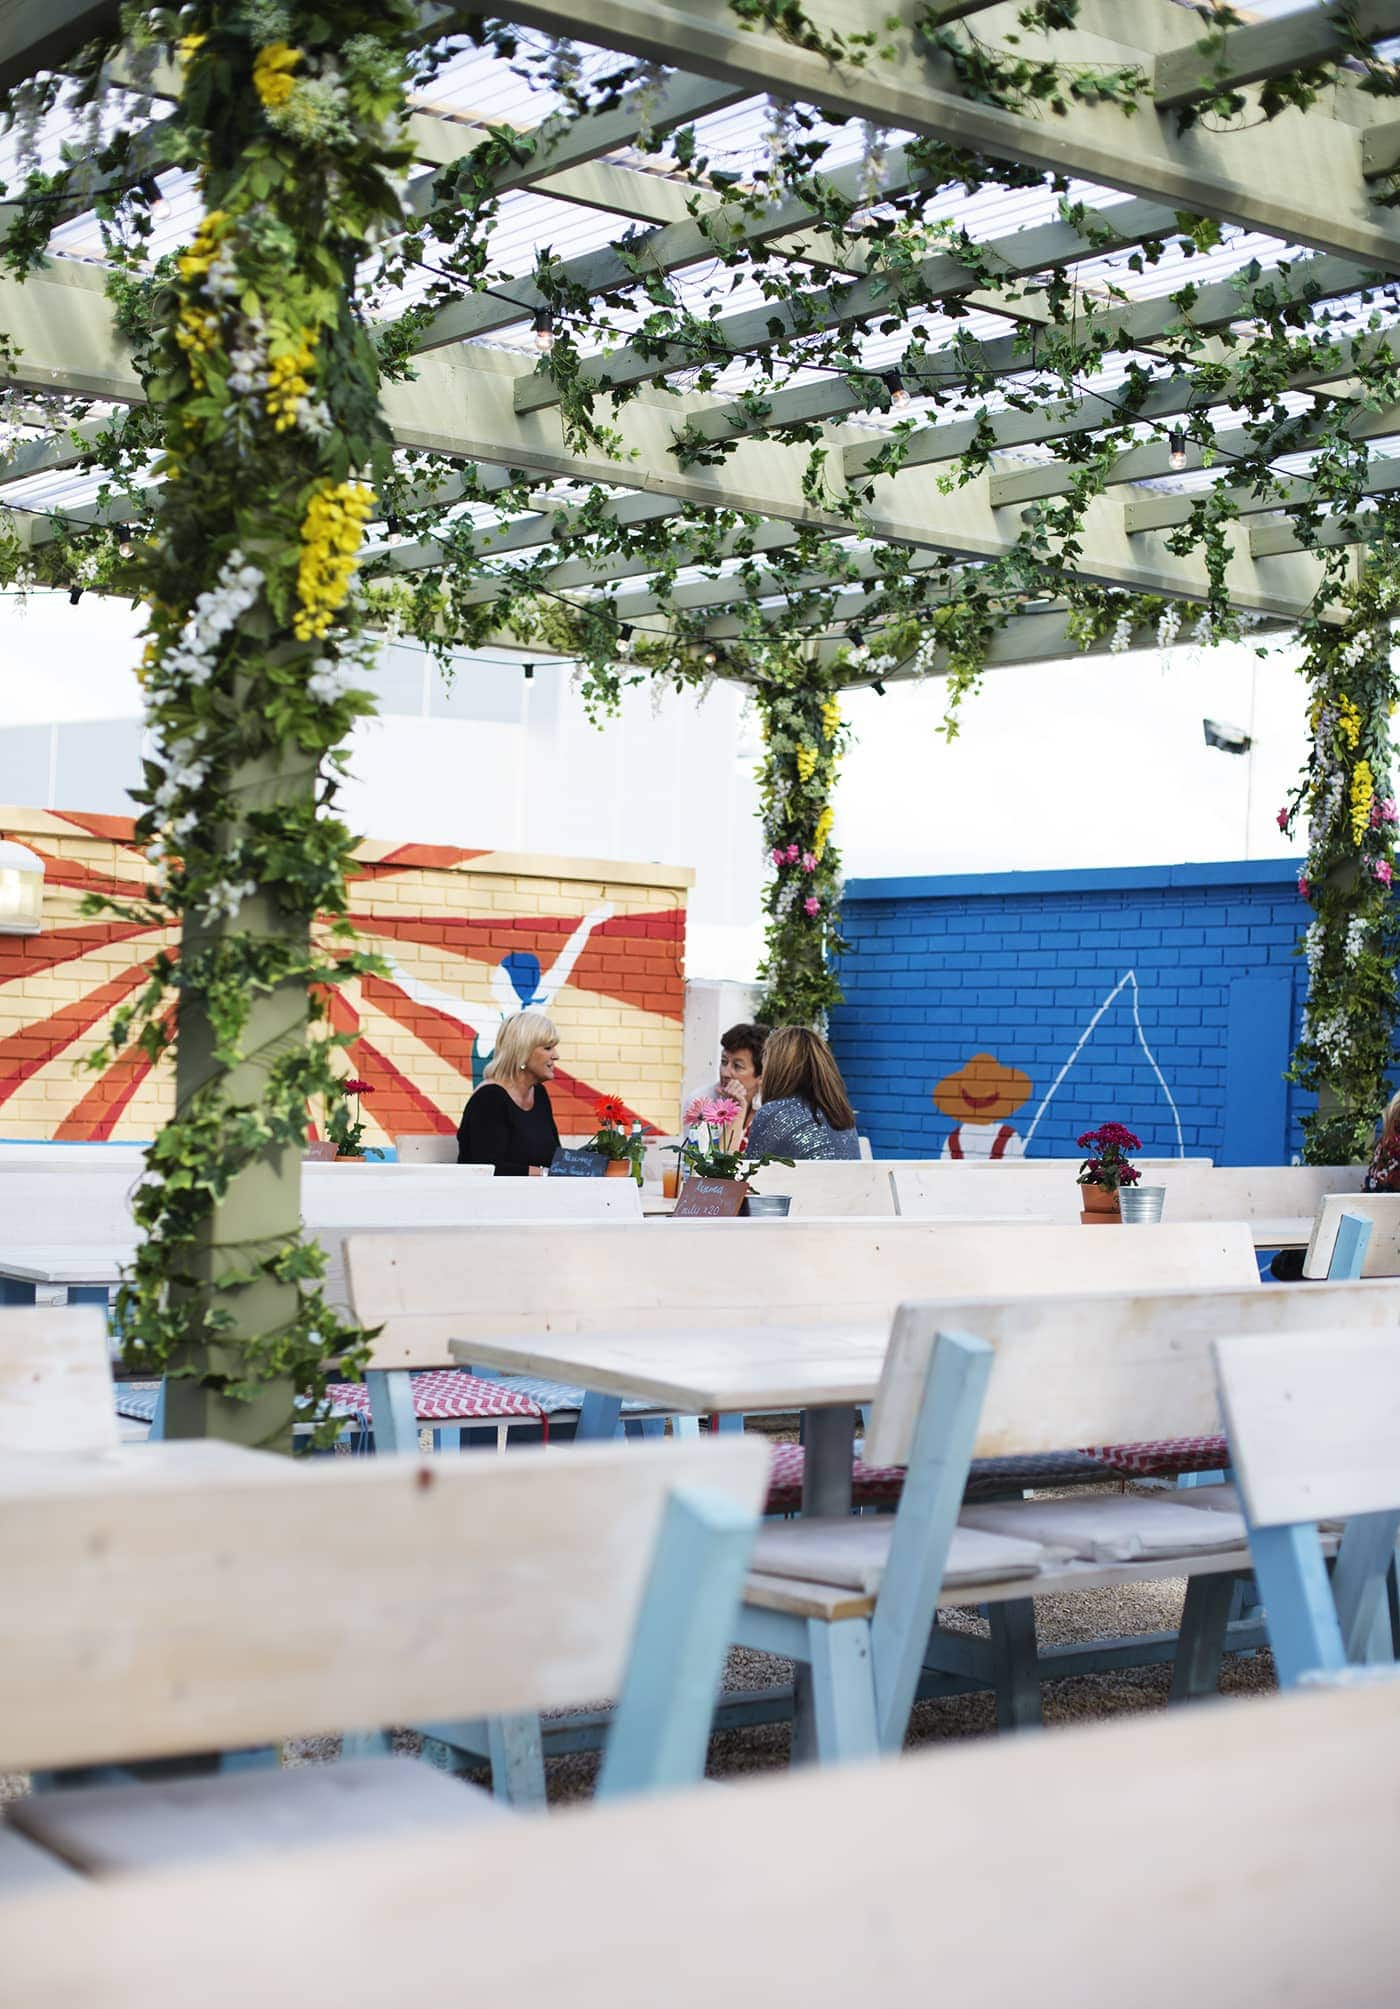 Birthday fun day | Pergola on the roof | roof top eating